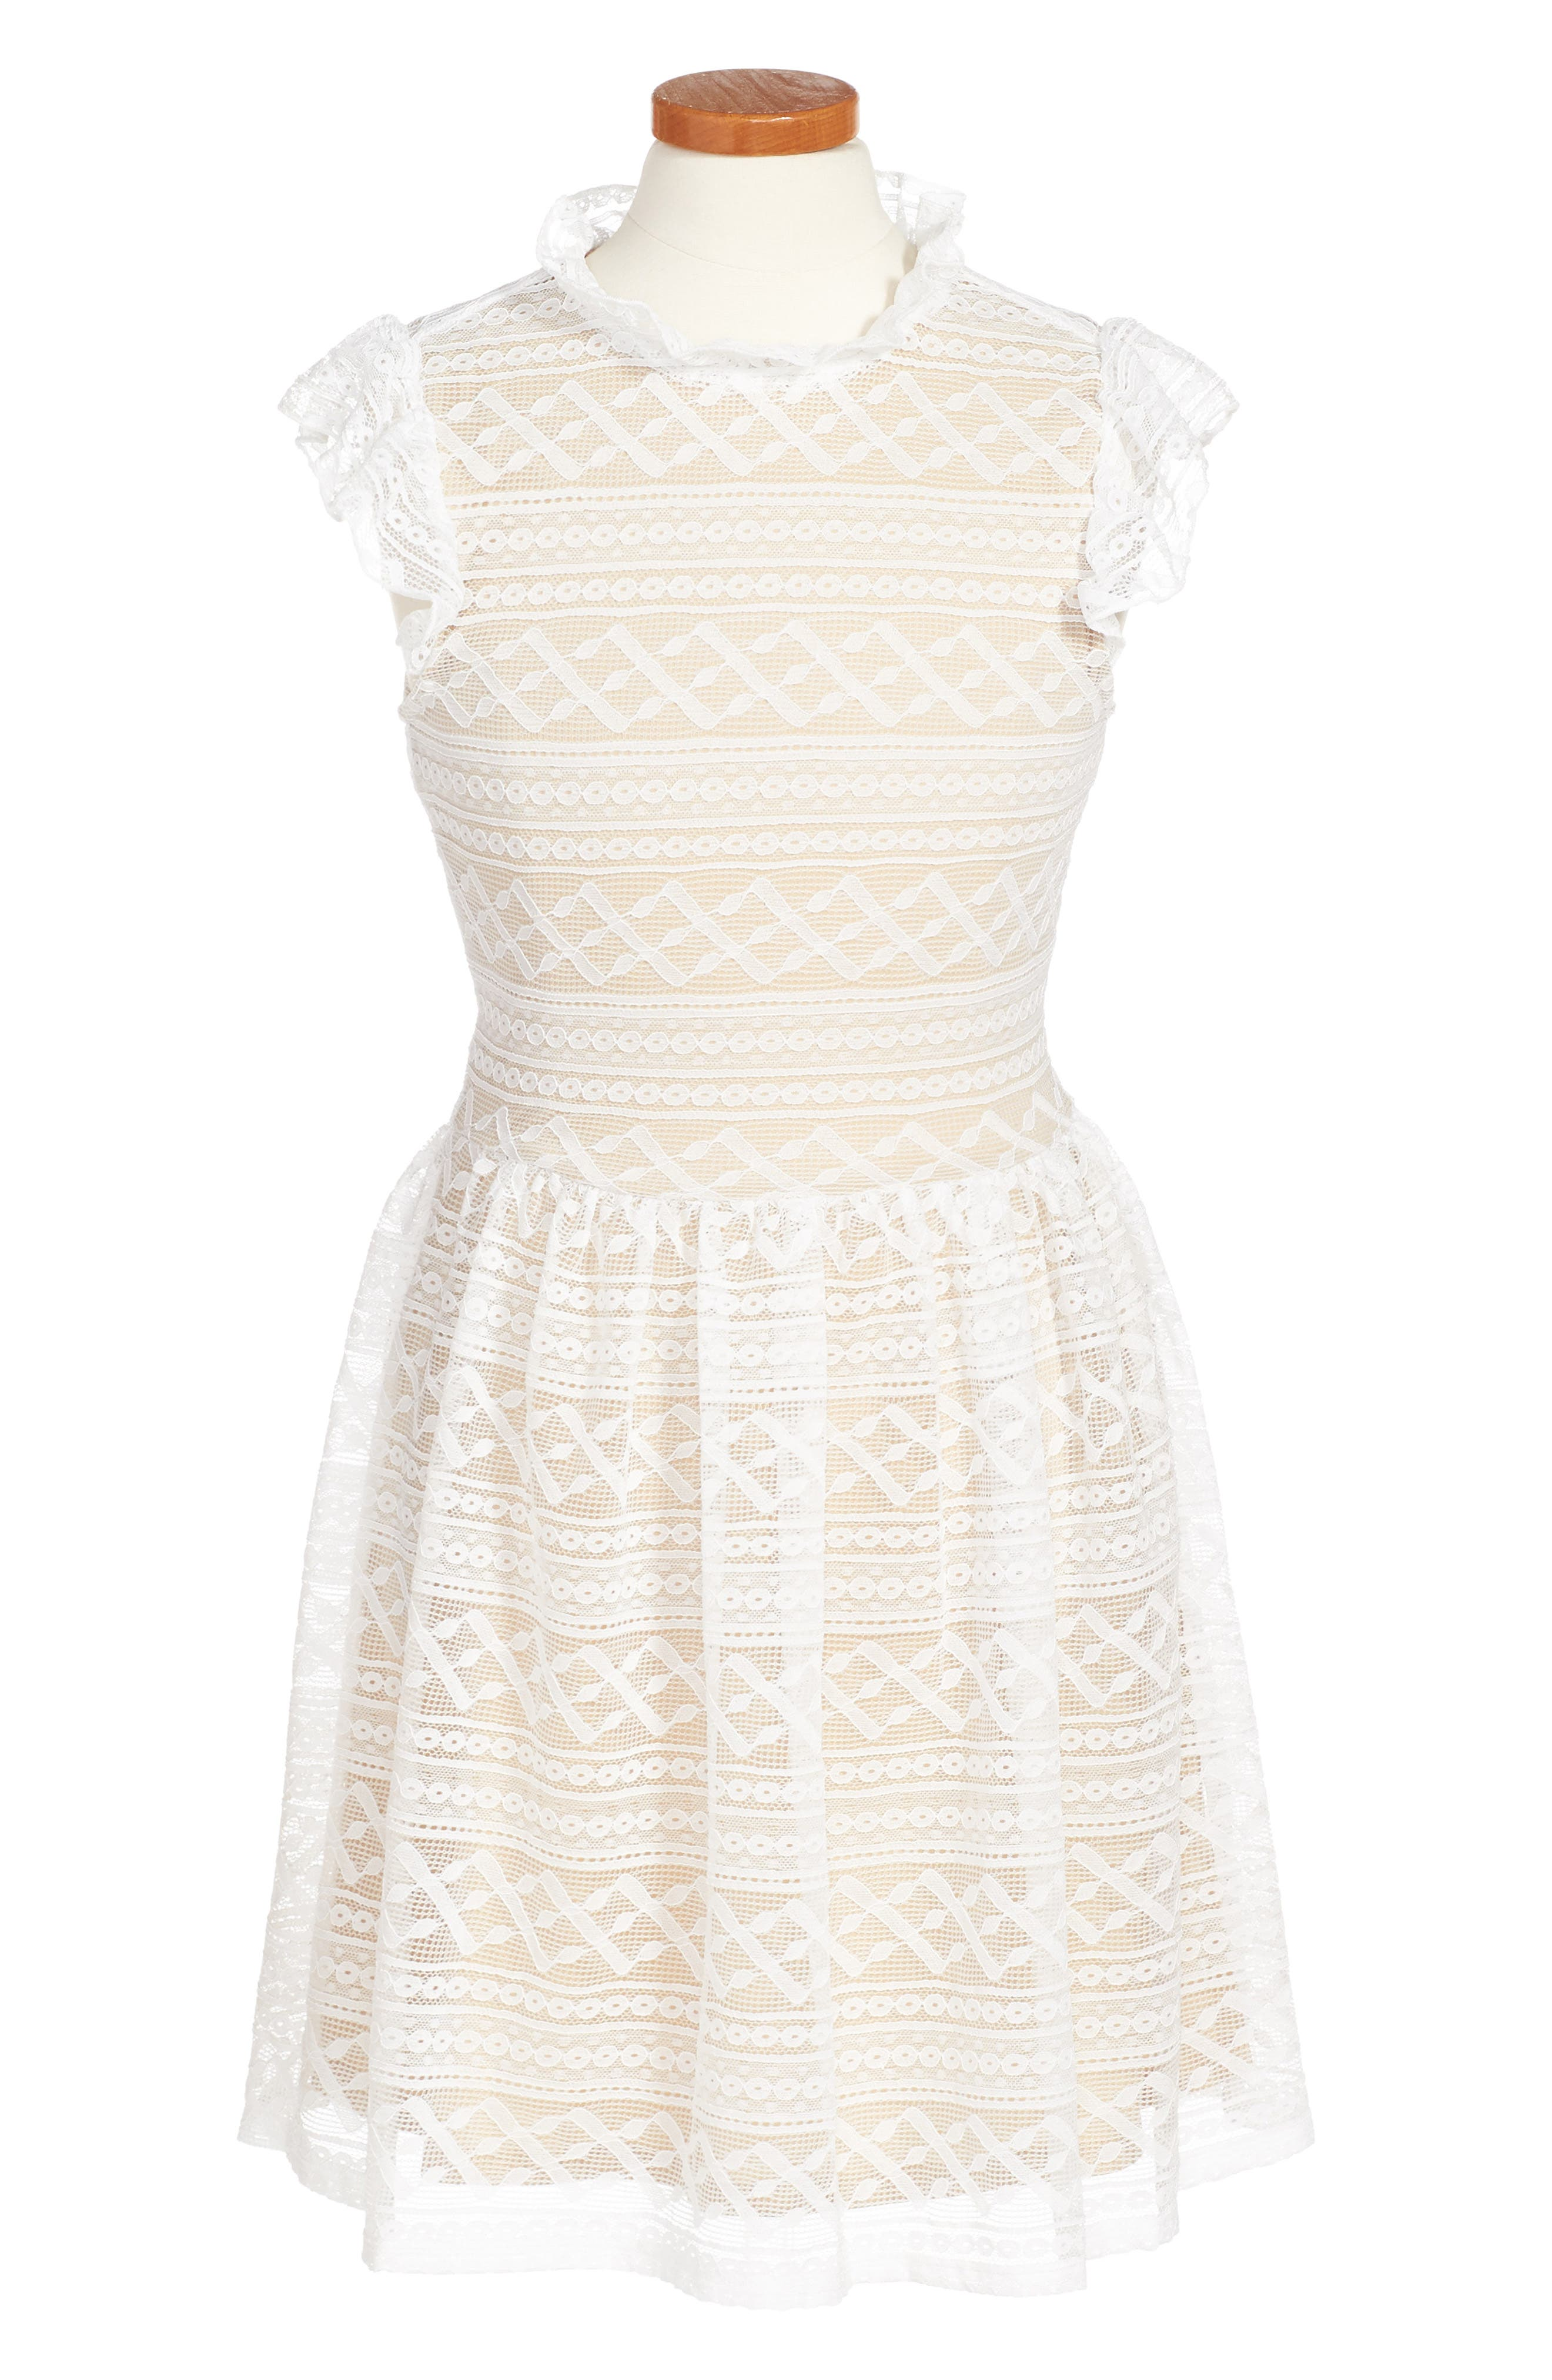 Alternate Image 1 Selected - Penelope Tree Hazel Dress (Big Girls)